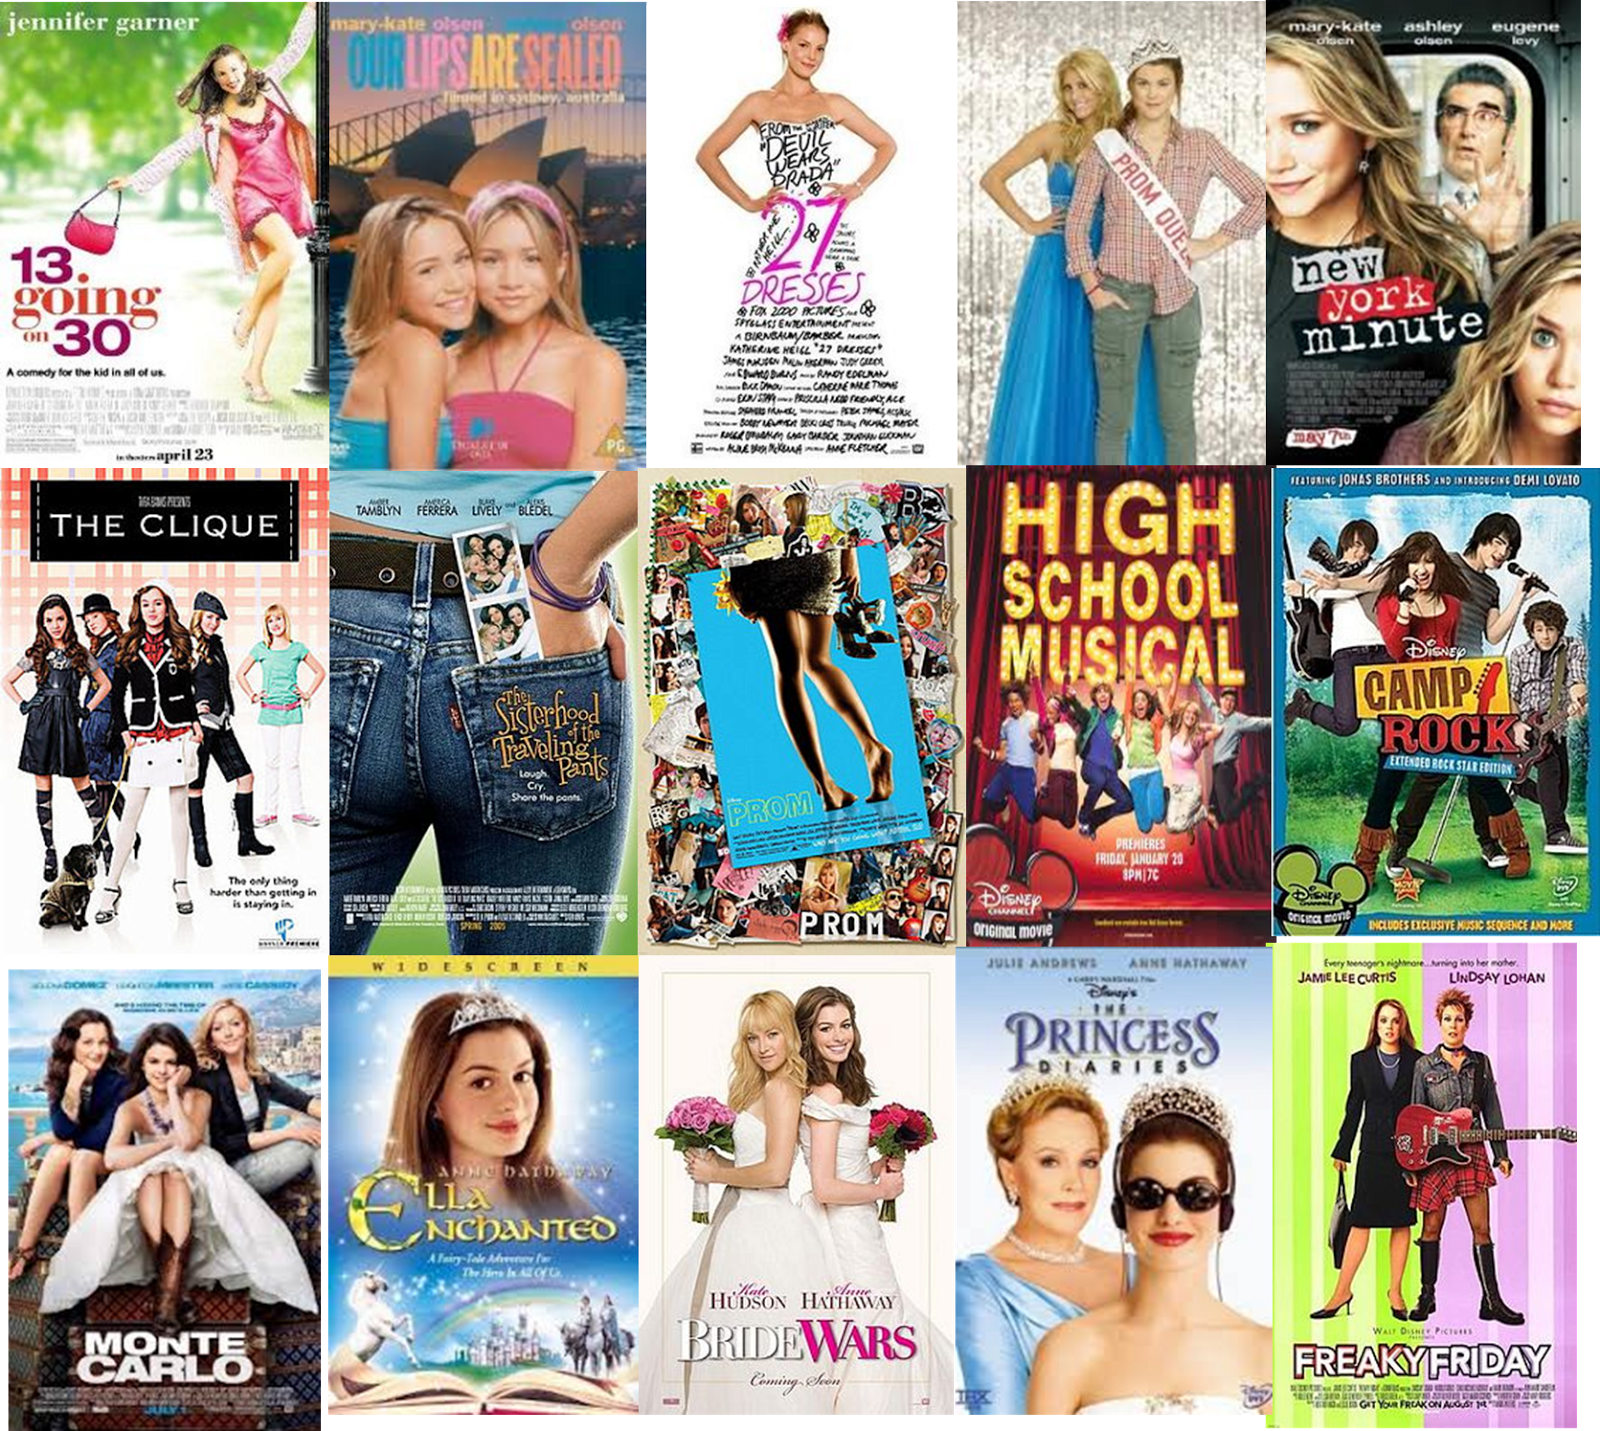 Girly movies movies tv music pinterest girly movies for Watch a good movie